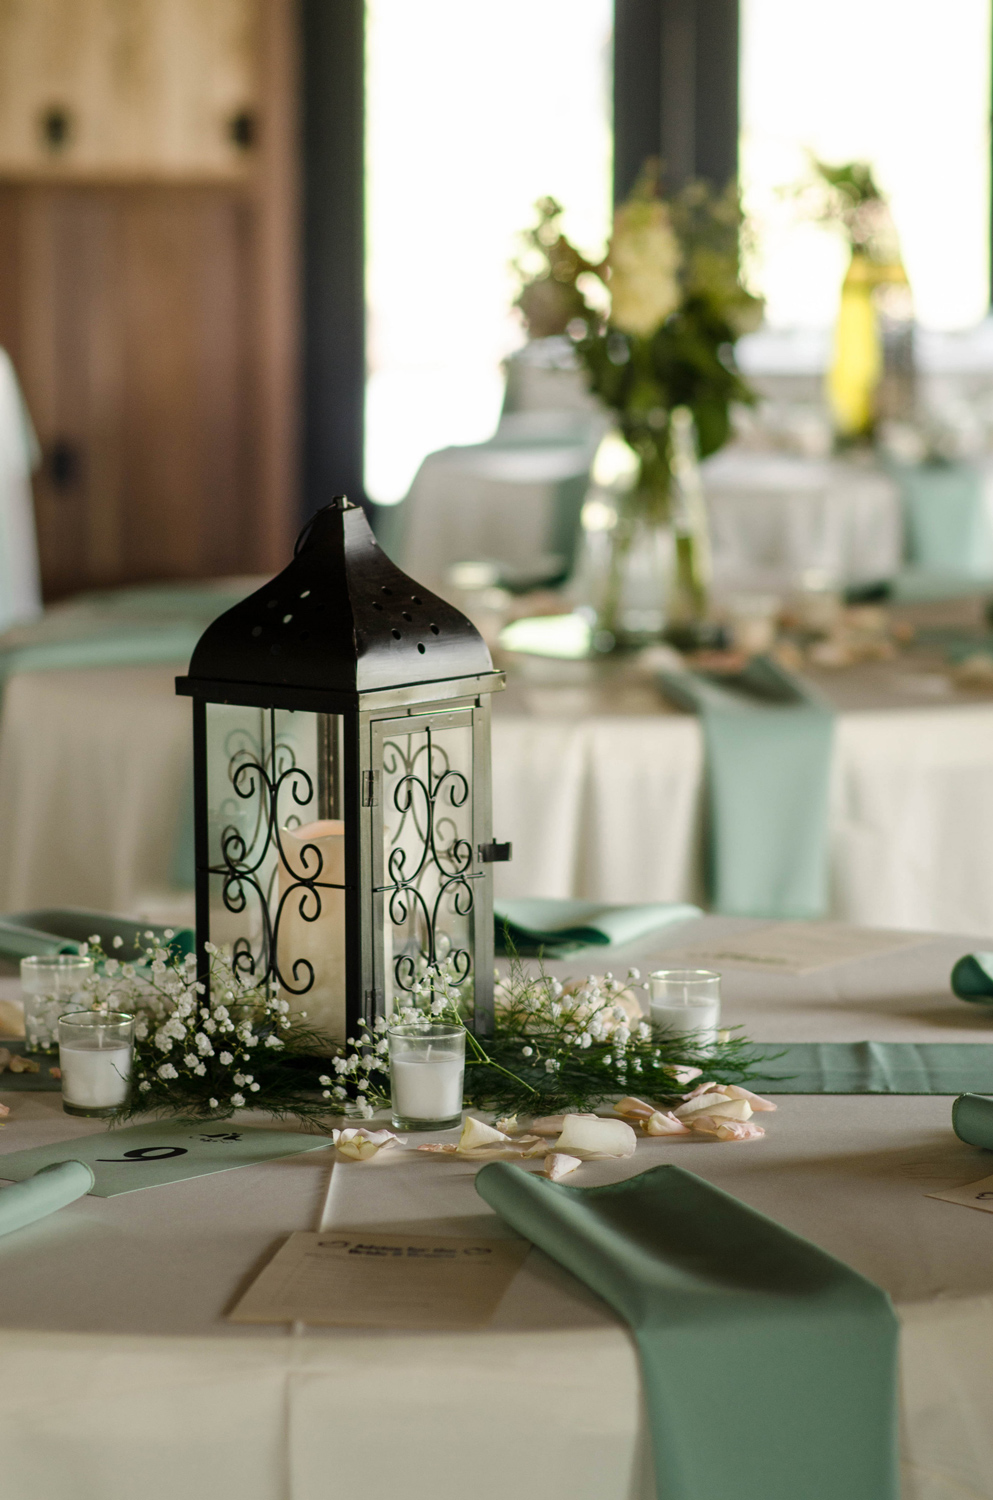 Interior_table_decor_closeup_whitesides_web.jpg